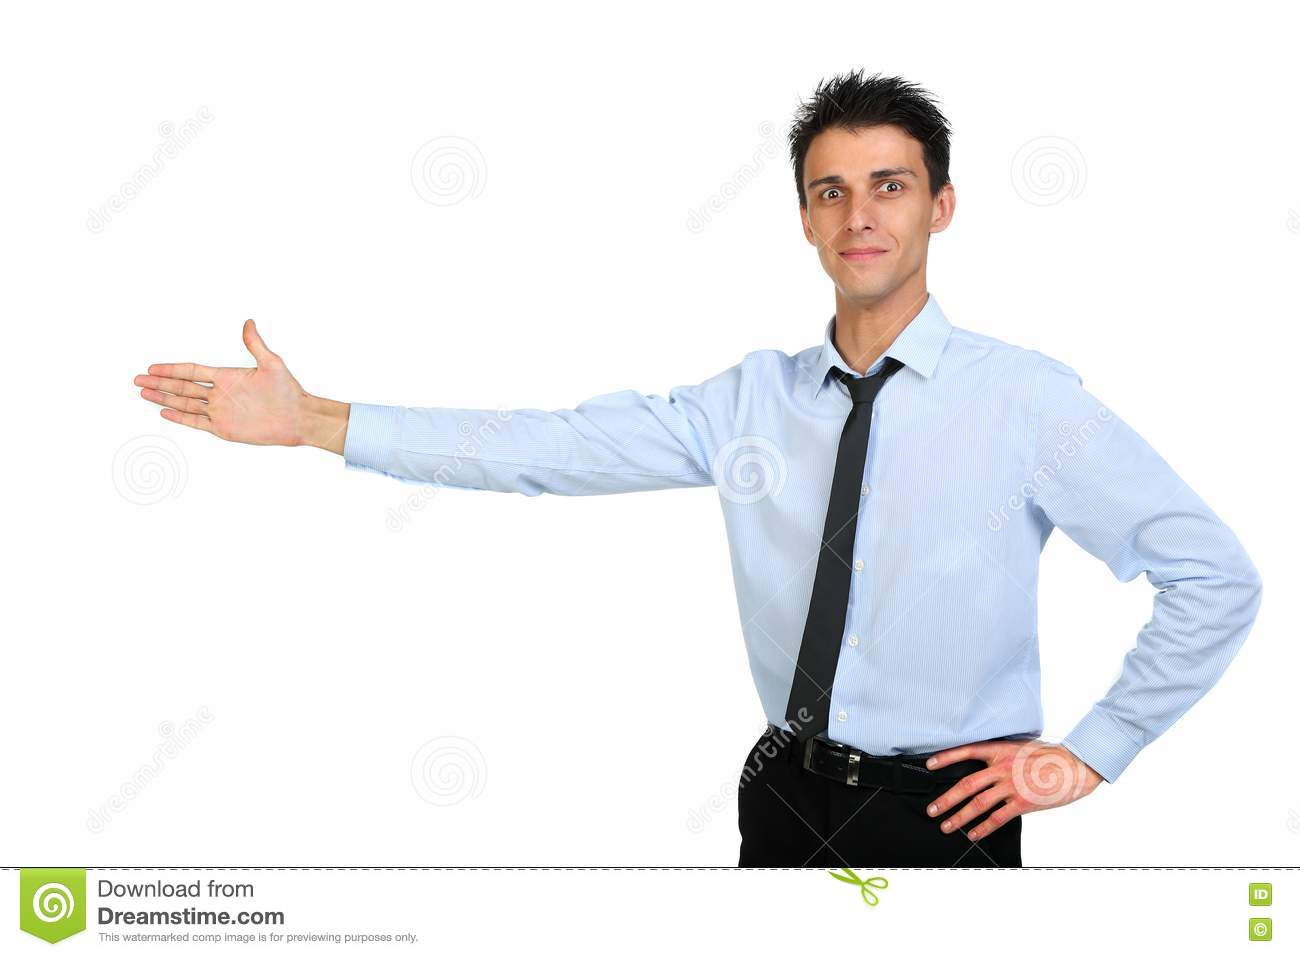 portrait-young-business-man-pointing-17692937.jpg